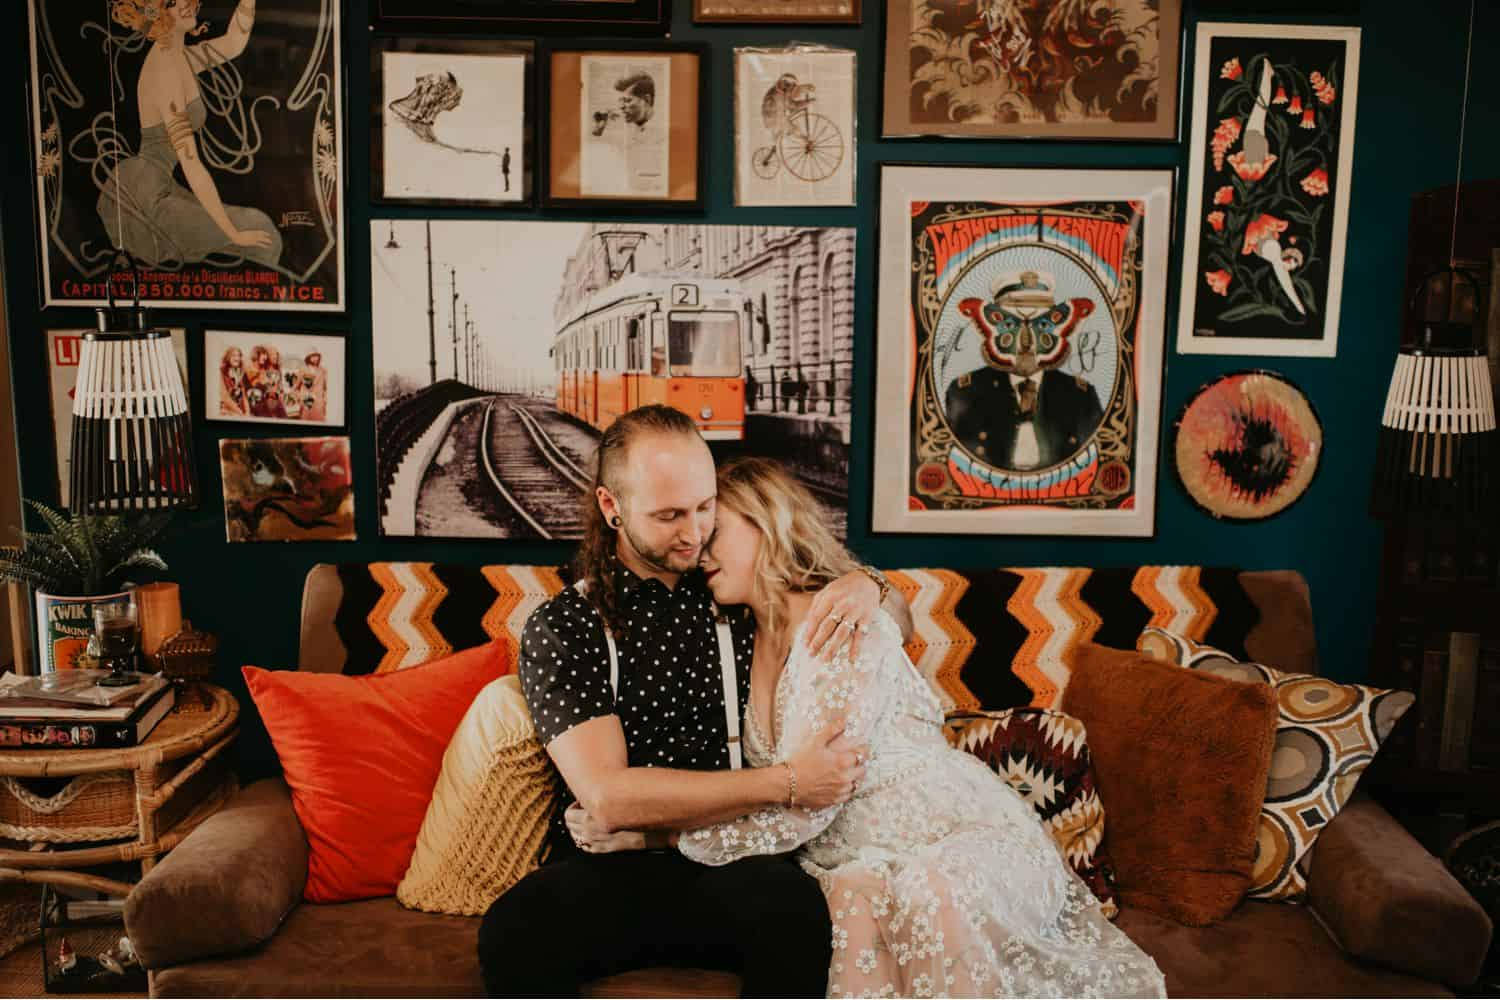 A couple embraces on their sofa. The wall behind them is covered in framed artwork. Learn how to take low light photos like Shelby Laine Photography